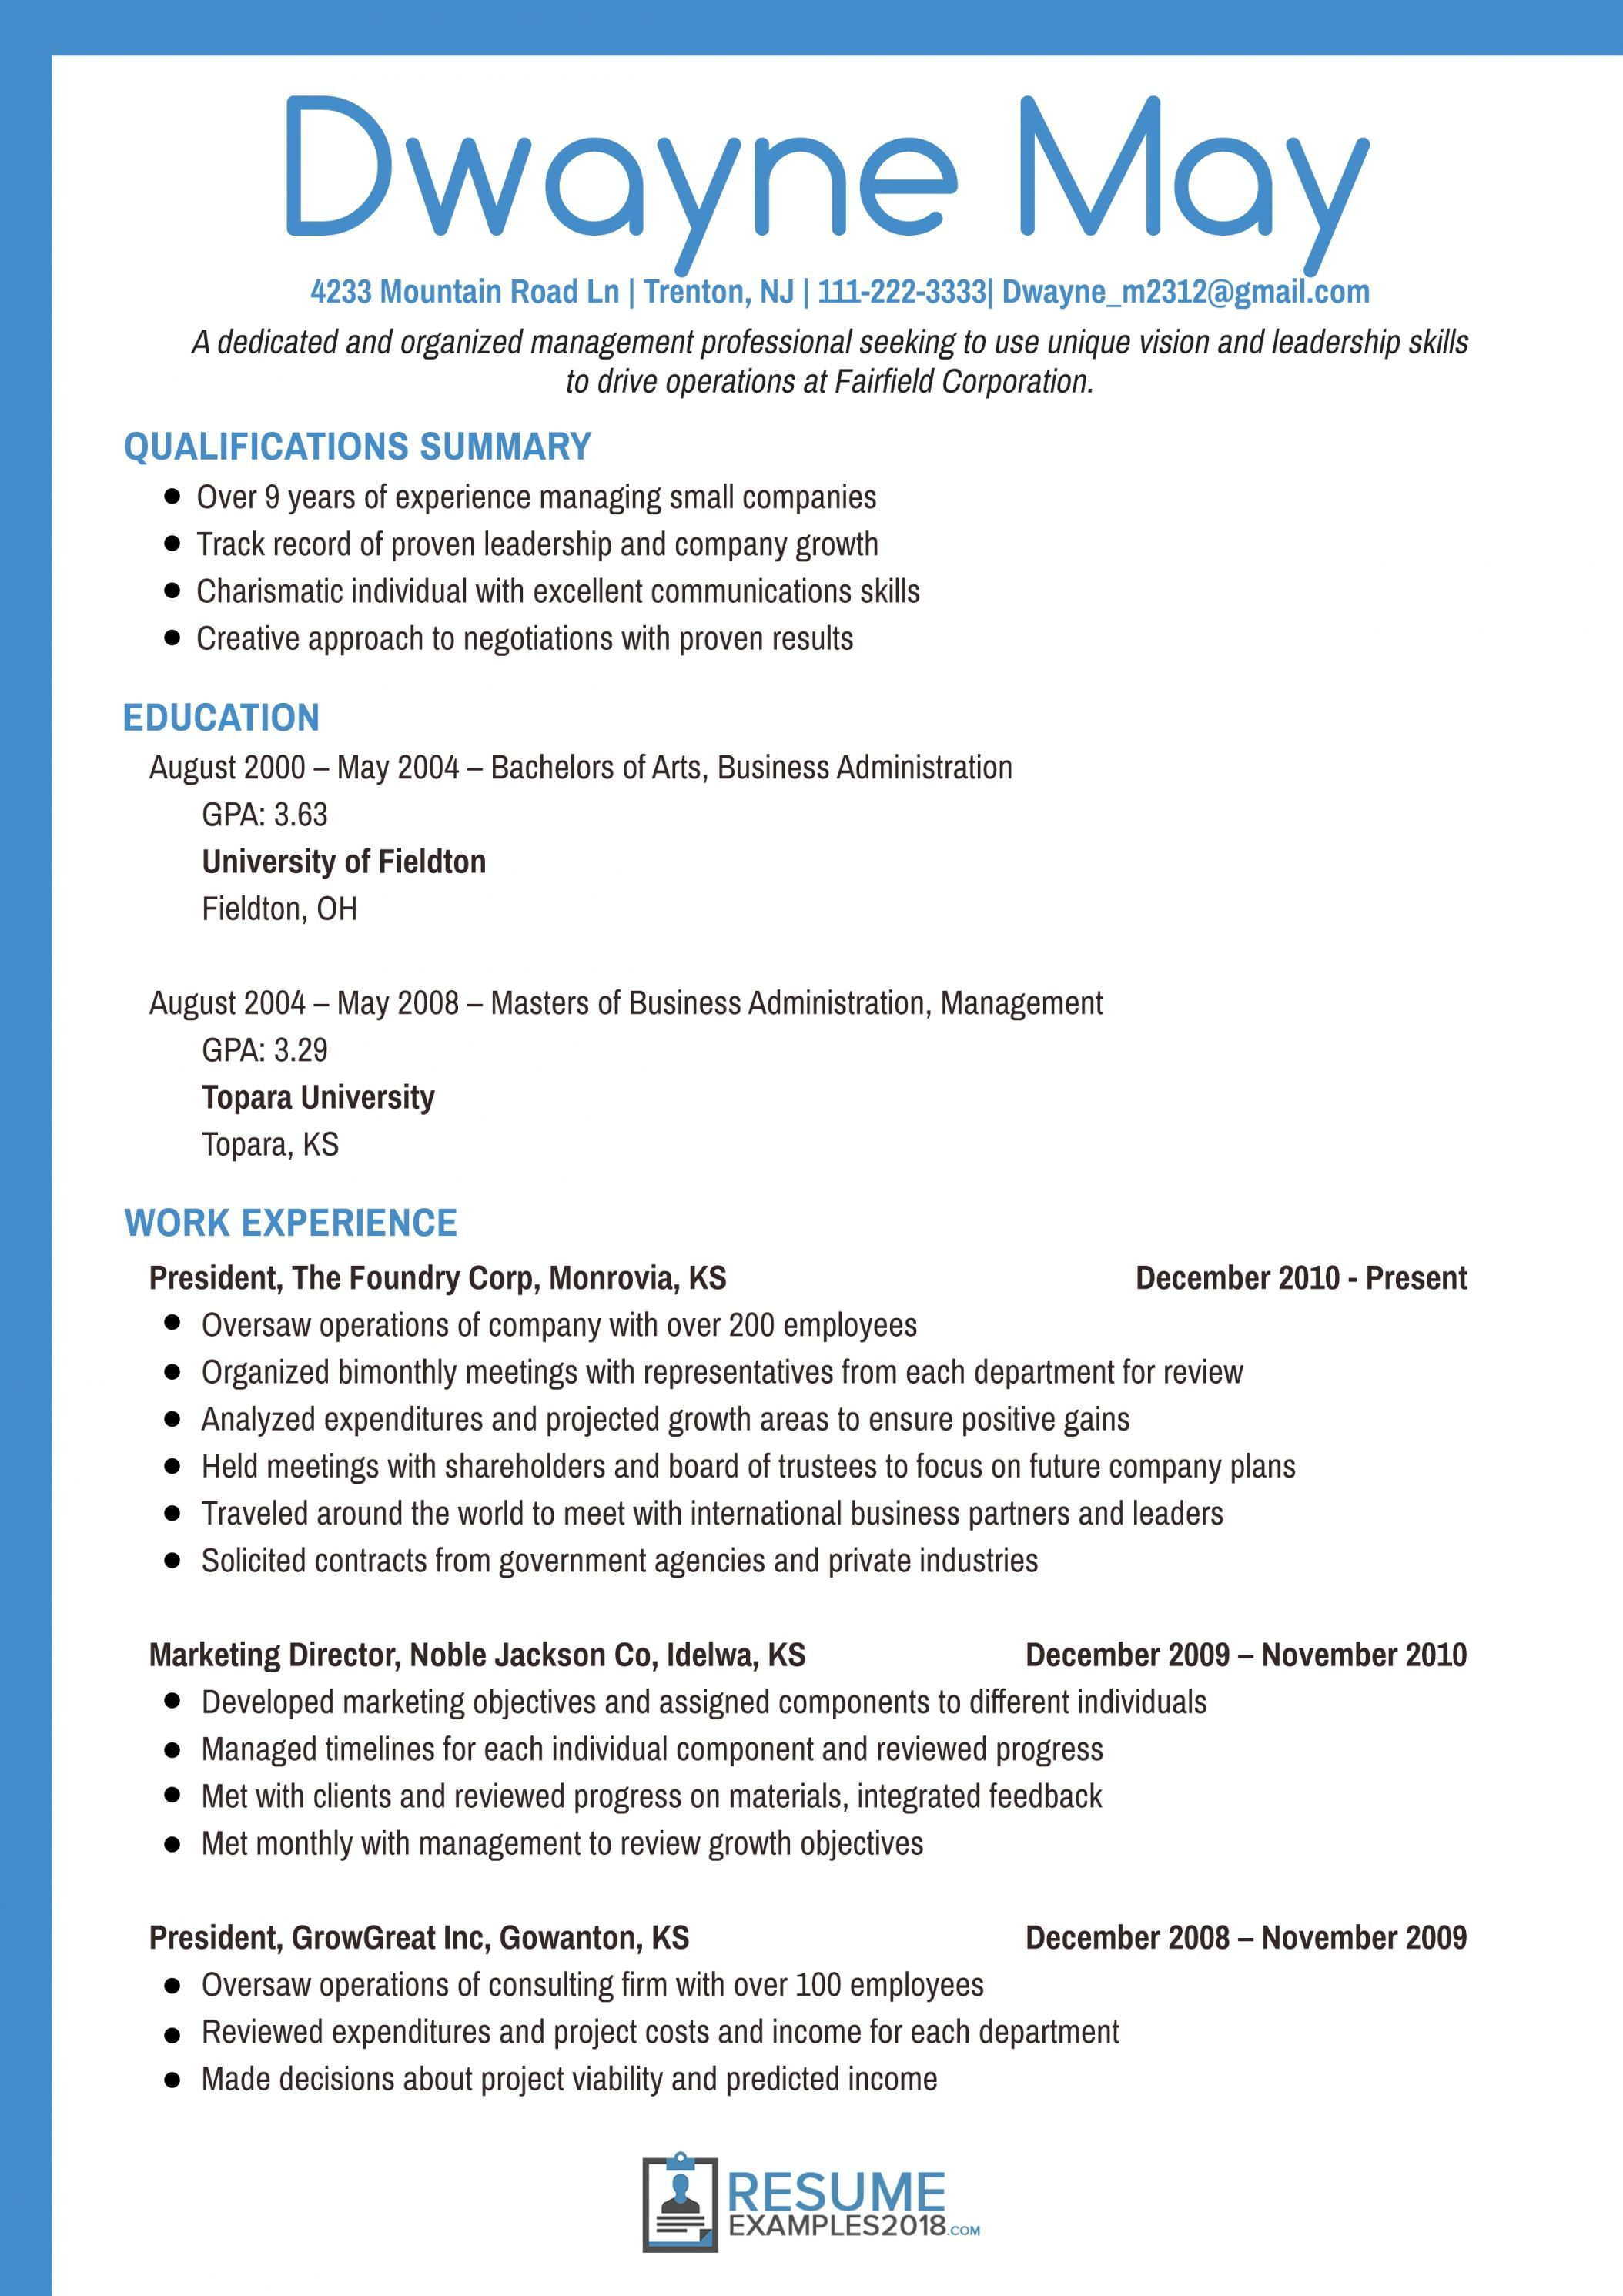 Resume Examples Me Nbspthis Website Is For Sale Nbspresume Examples Resources And Information Arts Education Quotes Motivational Quotes For Employees Positive Quotes For Work